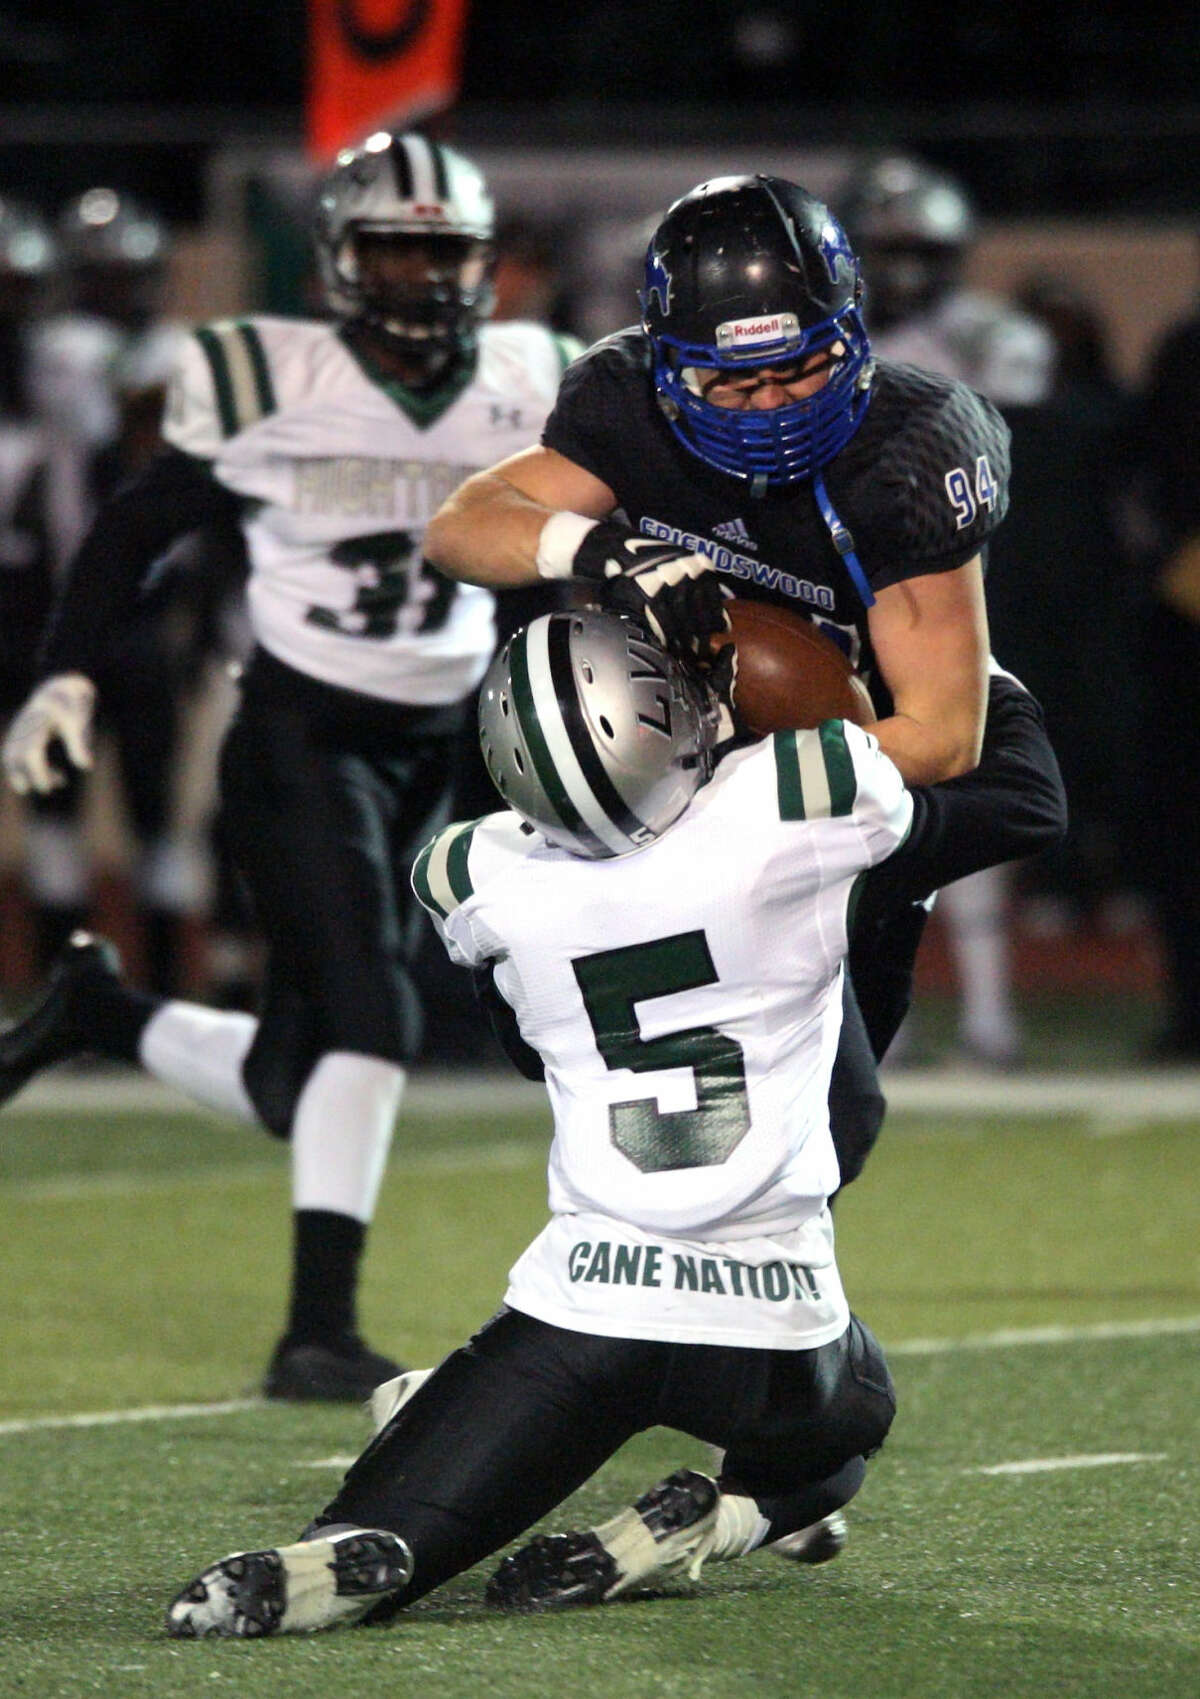 Hightower defender Jared Gill (5) puts the stop on Friendswood runner Eric Langston (94) Friday night in Alvin.